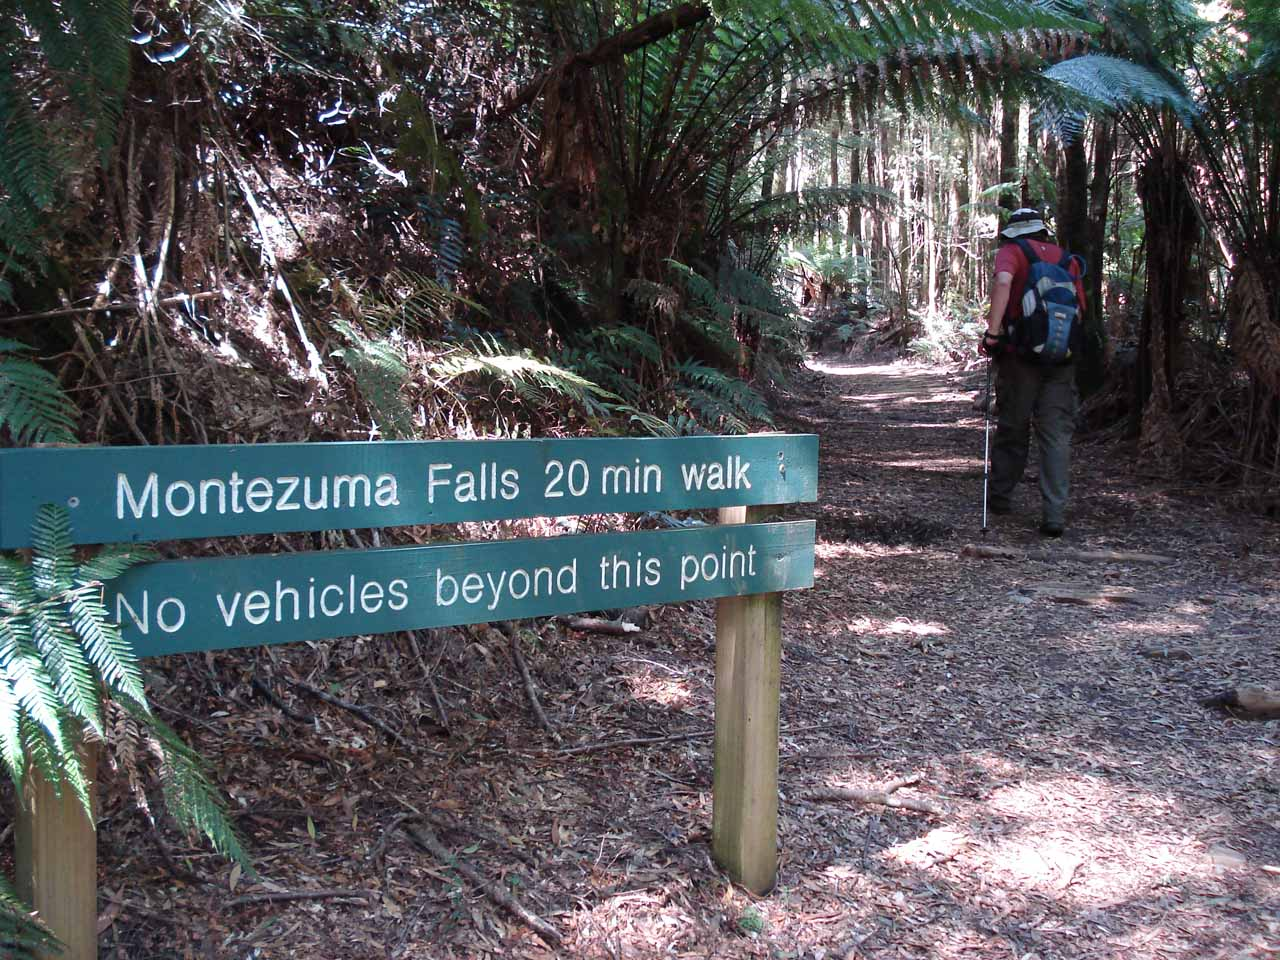 At this point, the Montezuma Falls track narrowed even more so no motorized vehicles could continue